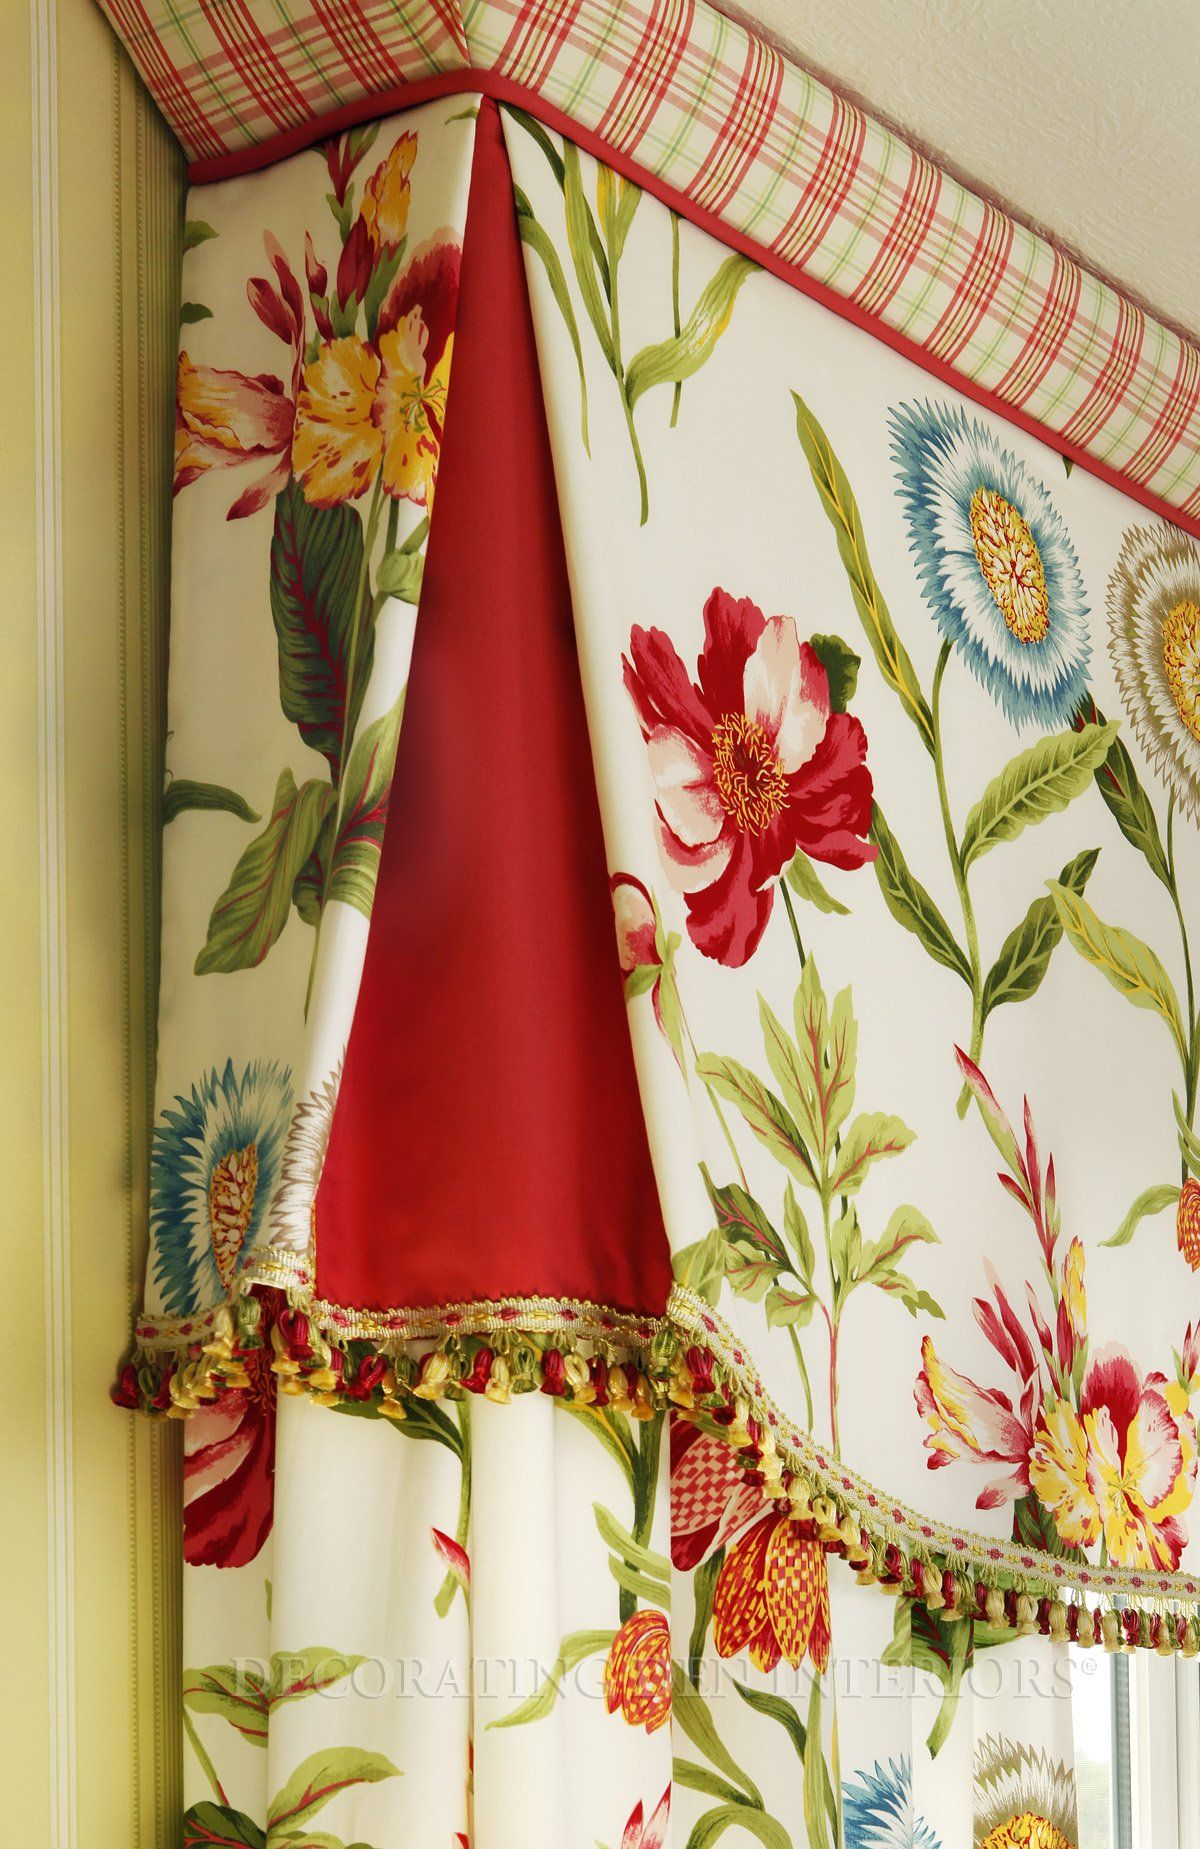 Plaid Kitchen Curtains Valances Contrast Inserts On Shaped Inverted Pleat Valance Perfectly